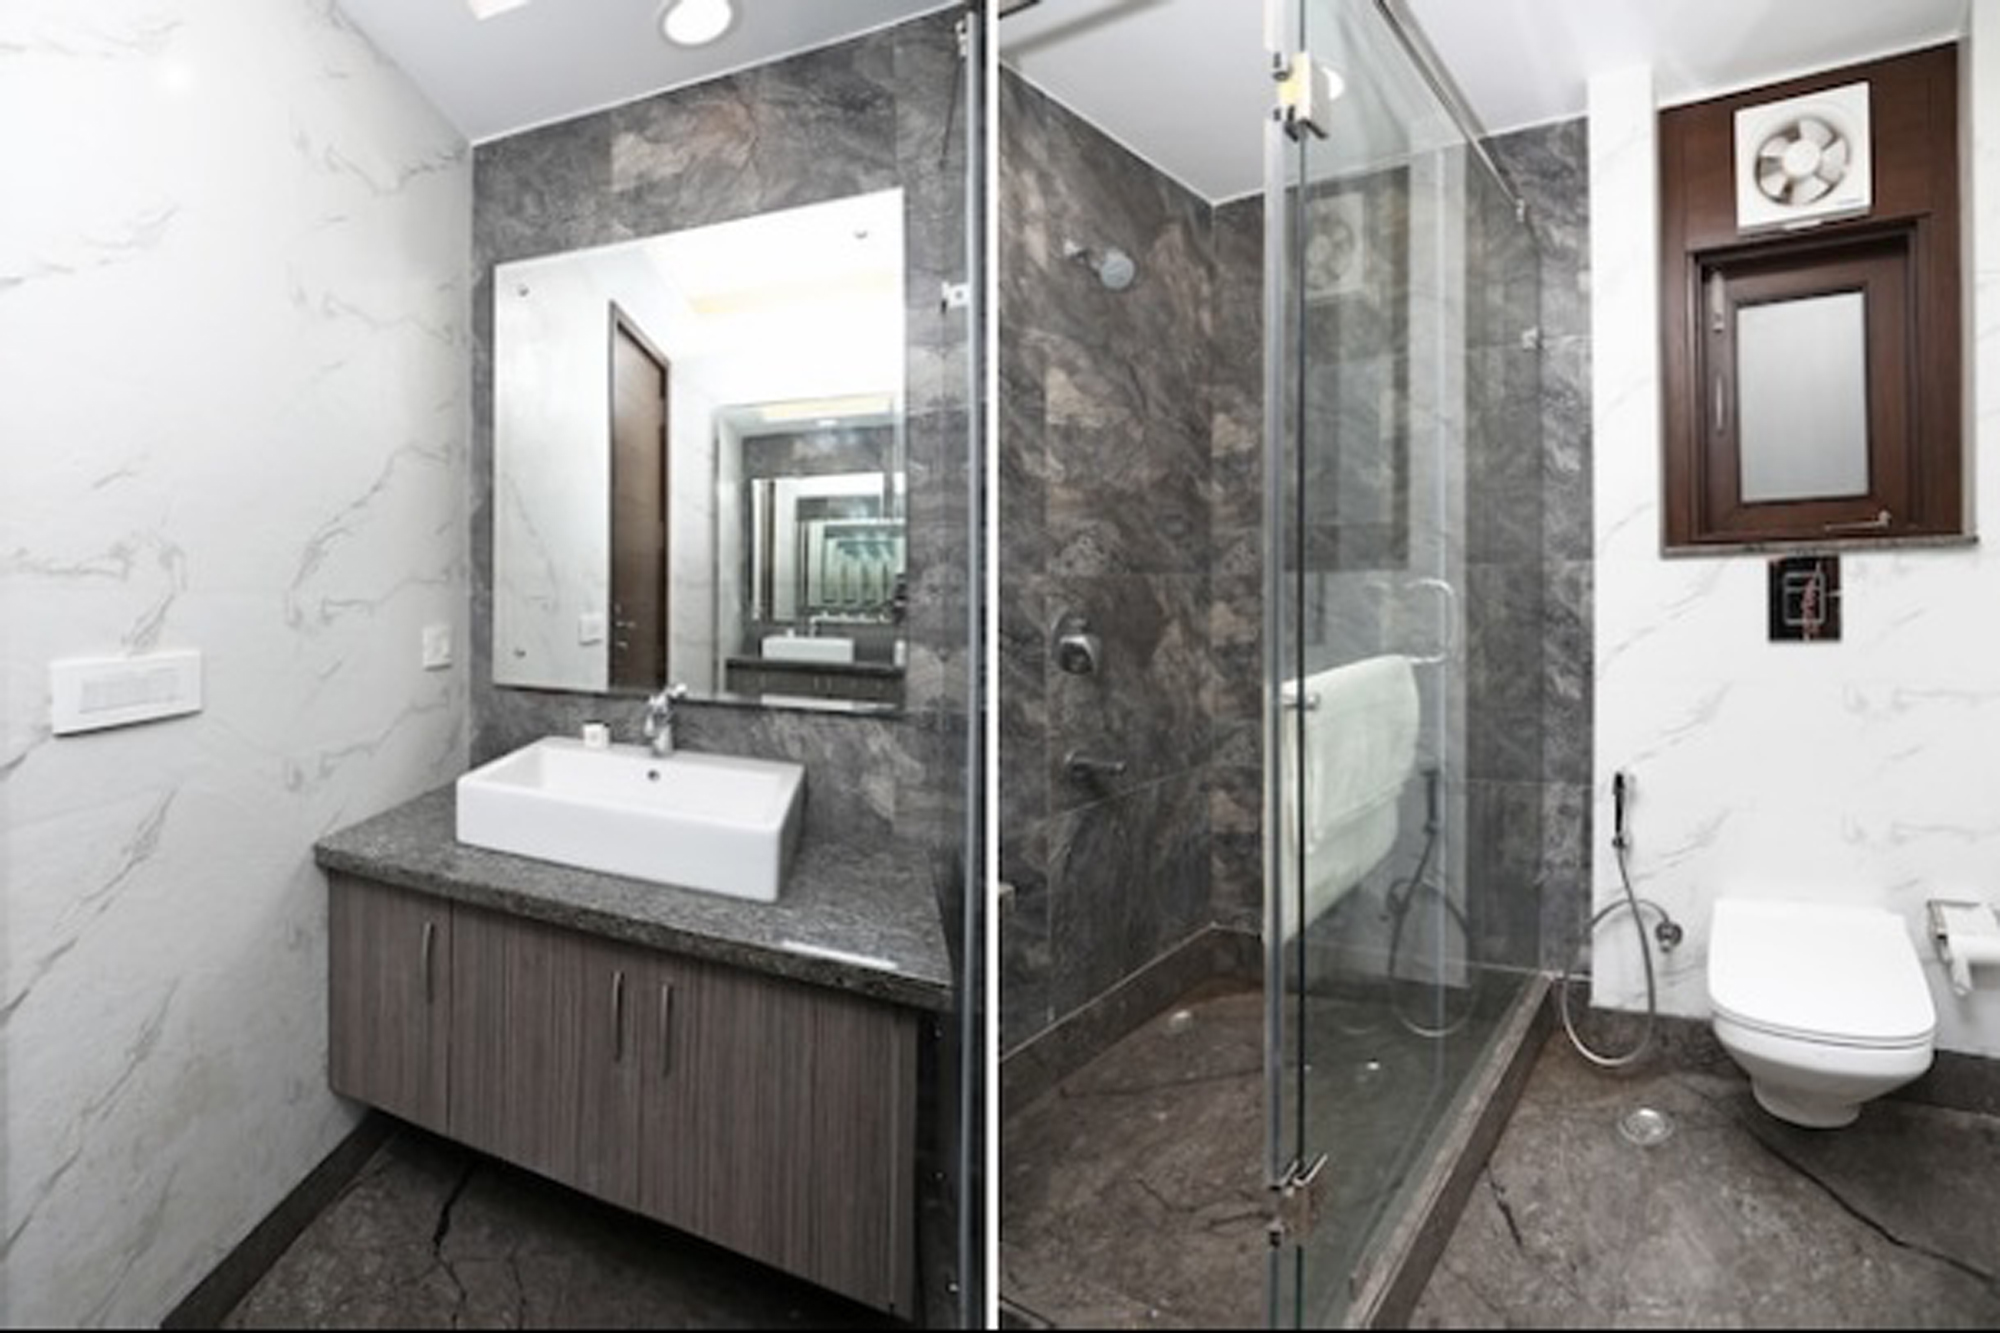 https://www.hotelsbyday.com/_data/default-hotel_image/2/14701/7-amar-villa-bath-room-amenities.jpg